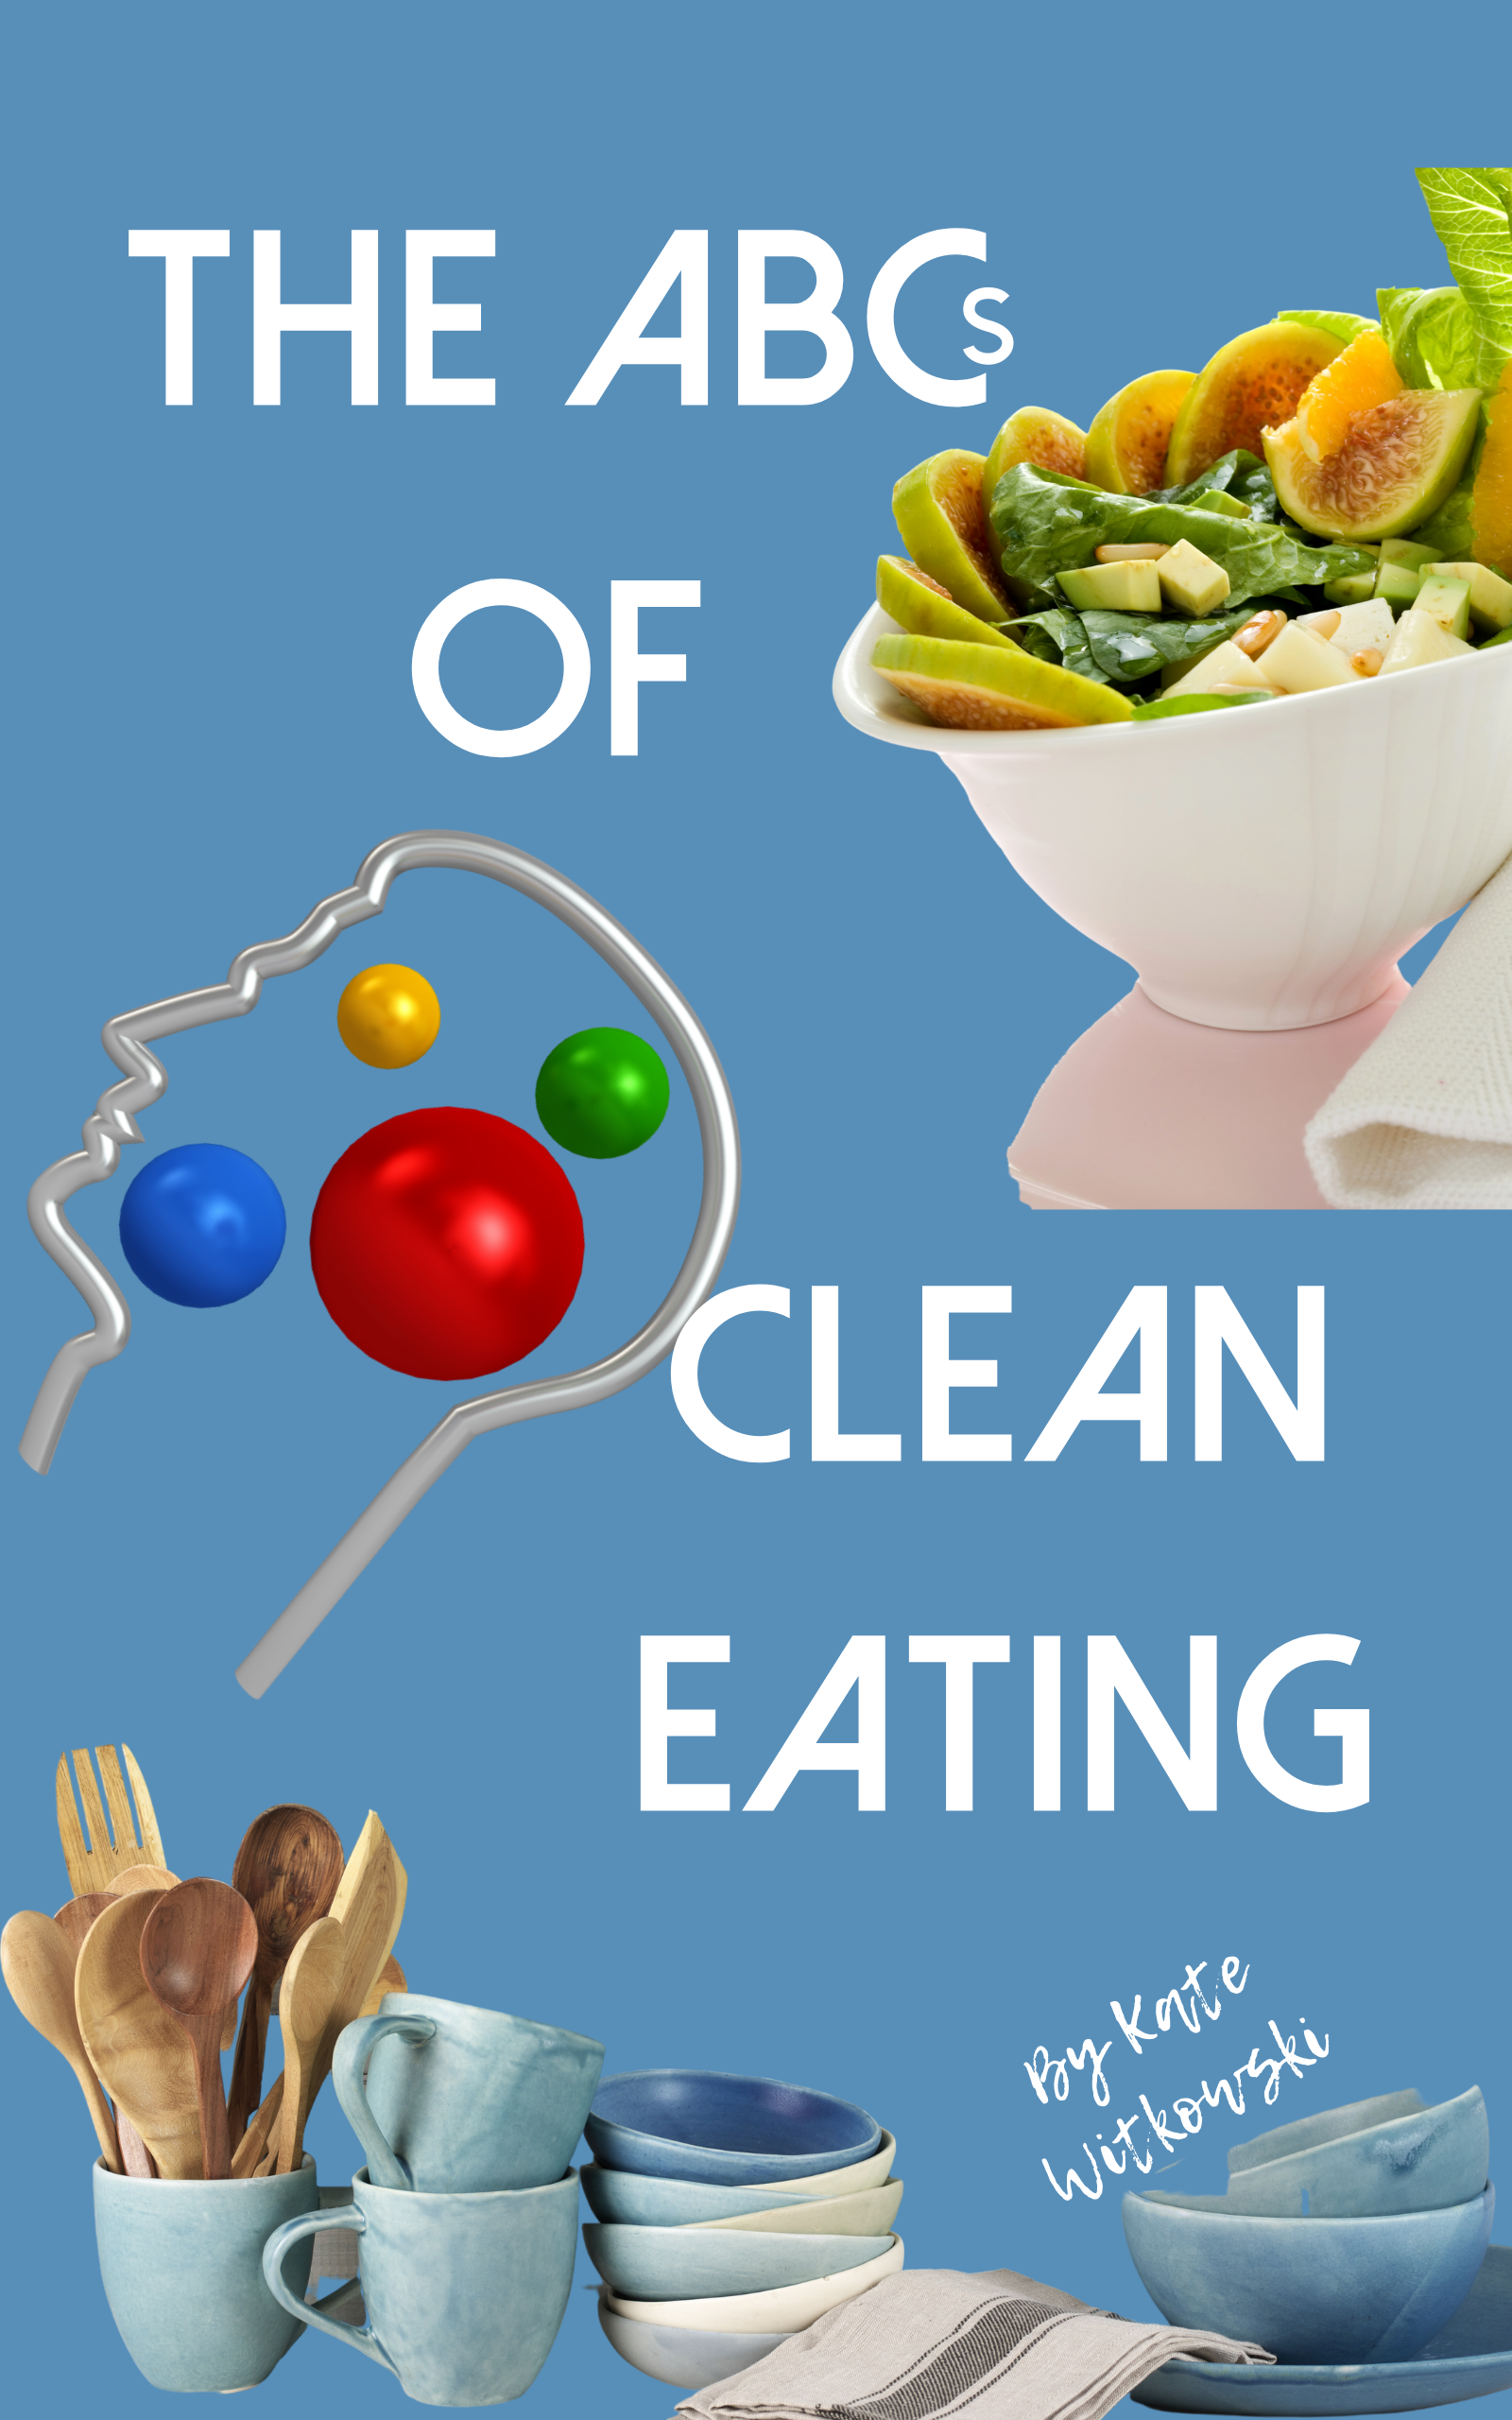 The ABCs of Clean Eating